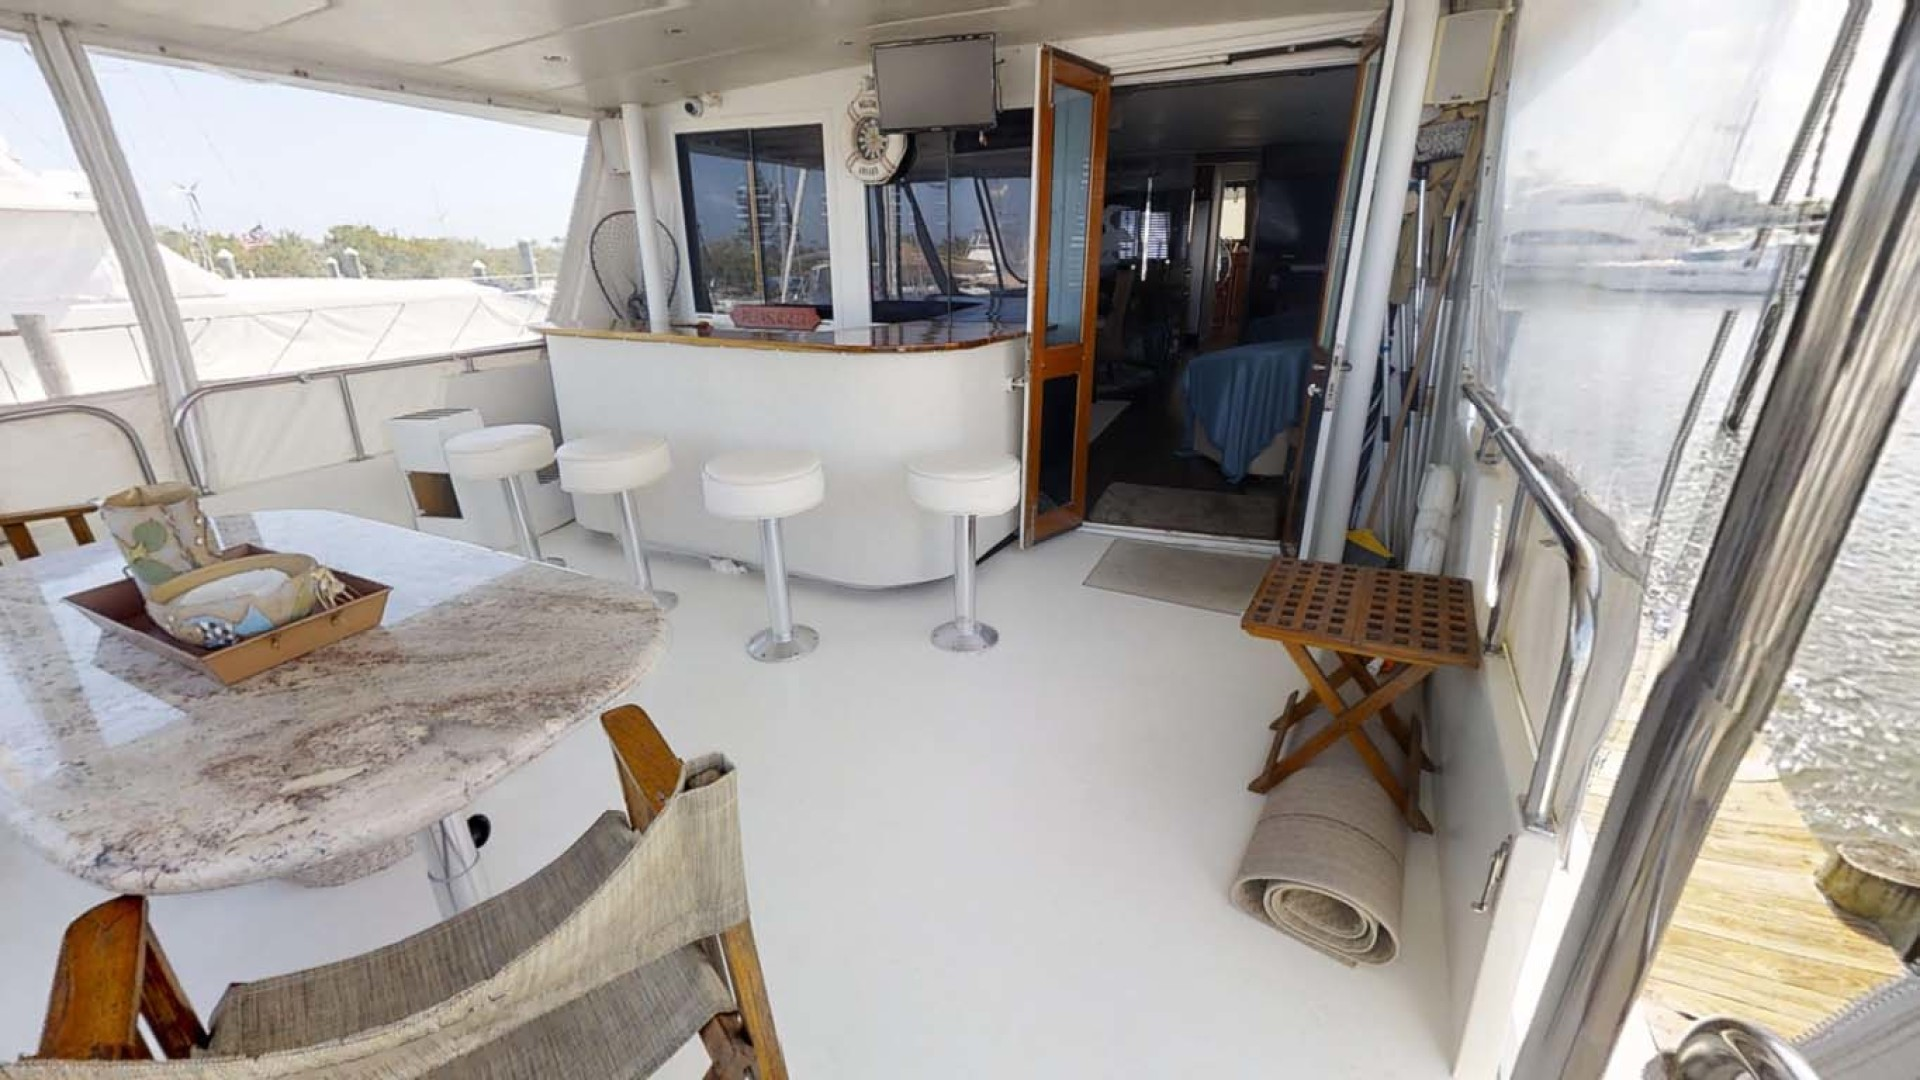 Hatteras-74 Motor Yacht 1981-Pleasurizer Fort Pierce-Florida-United States-Aft Deck-1122246 | Thumbnail